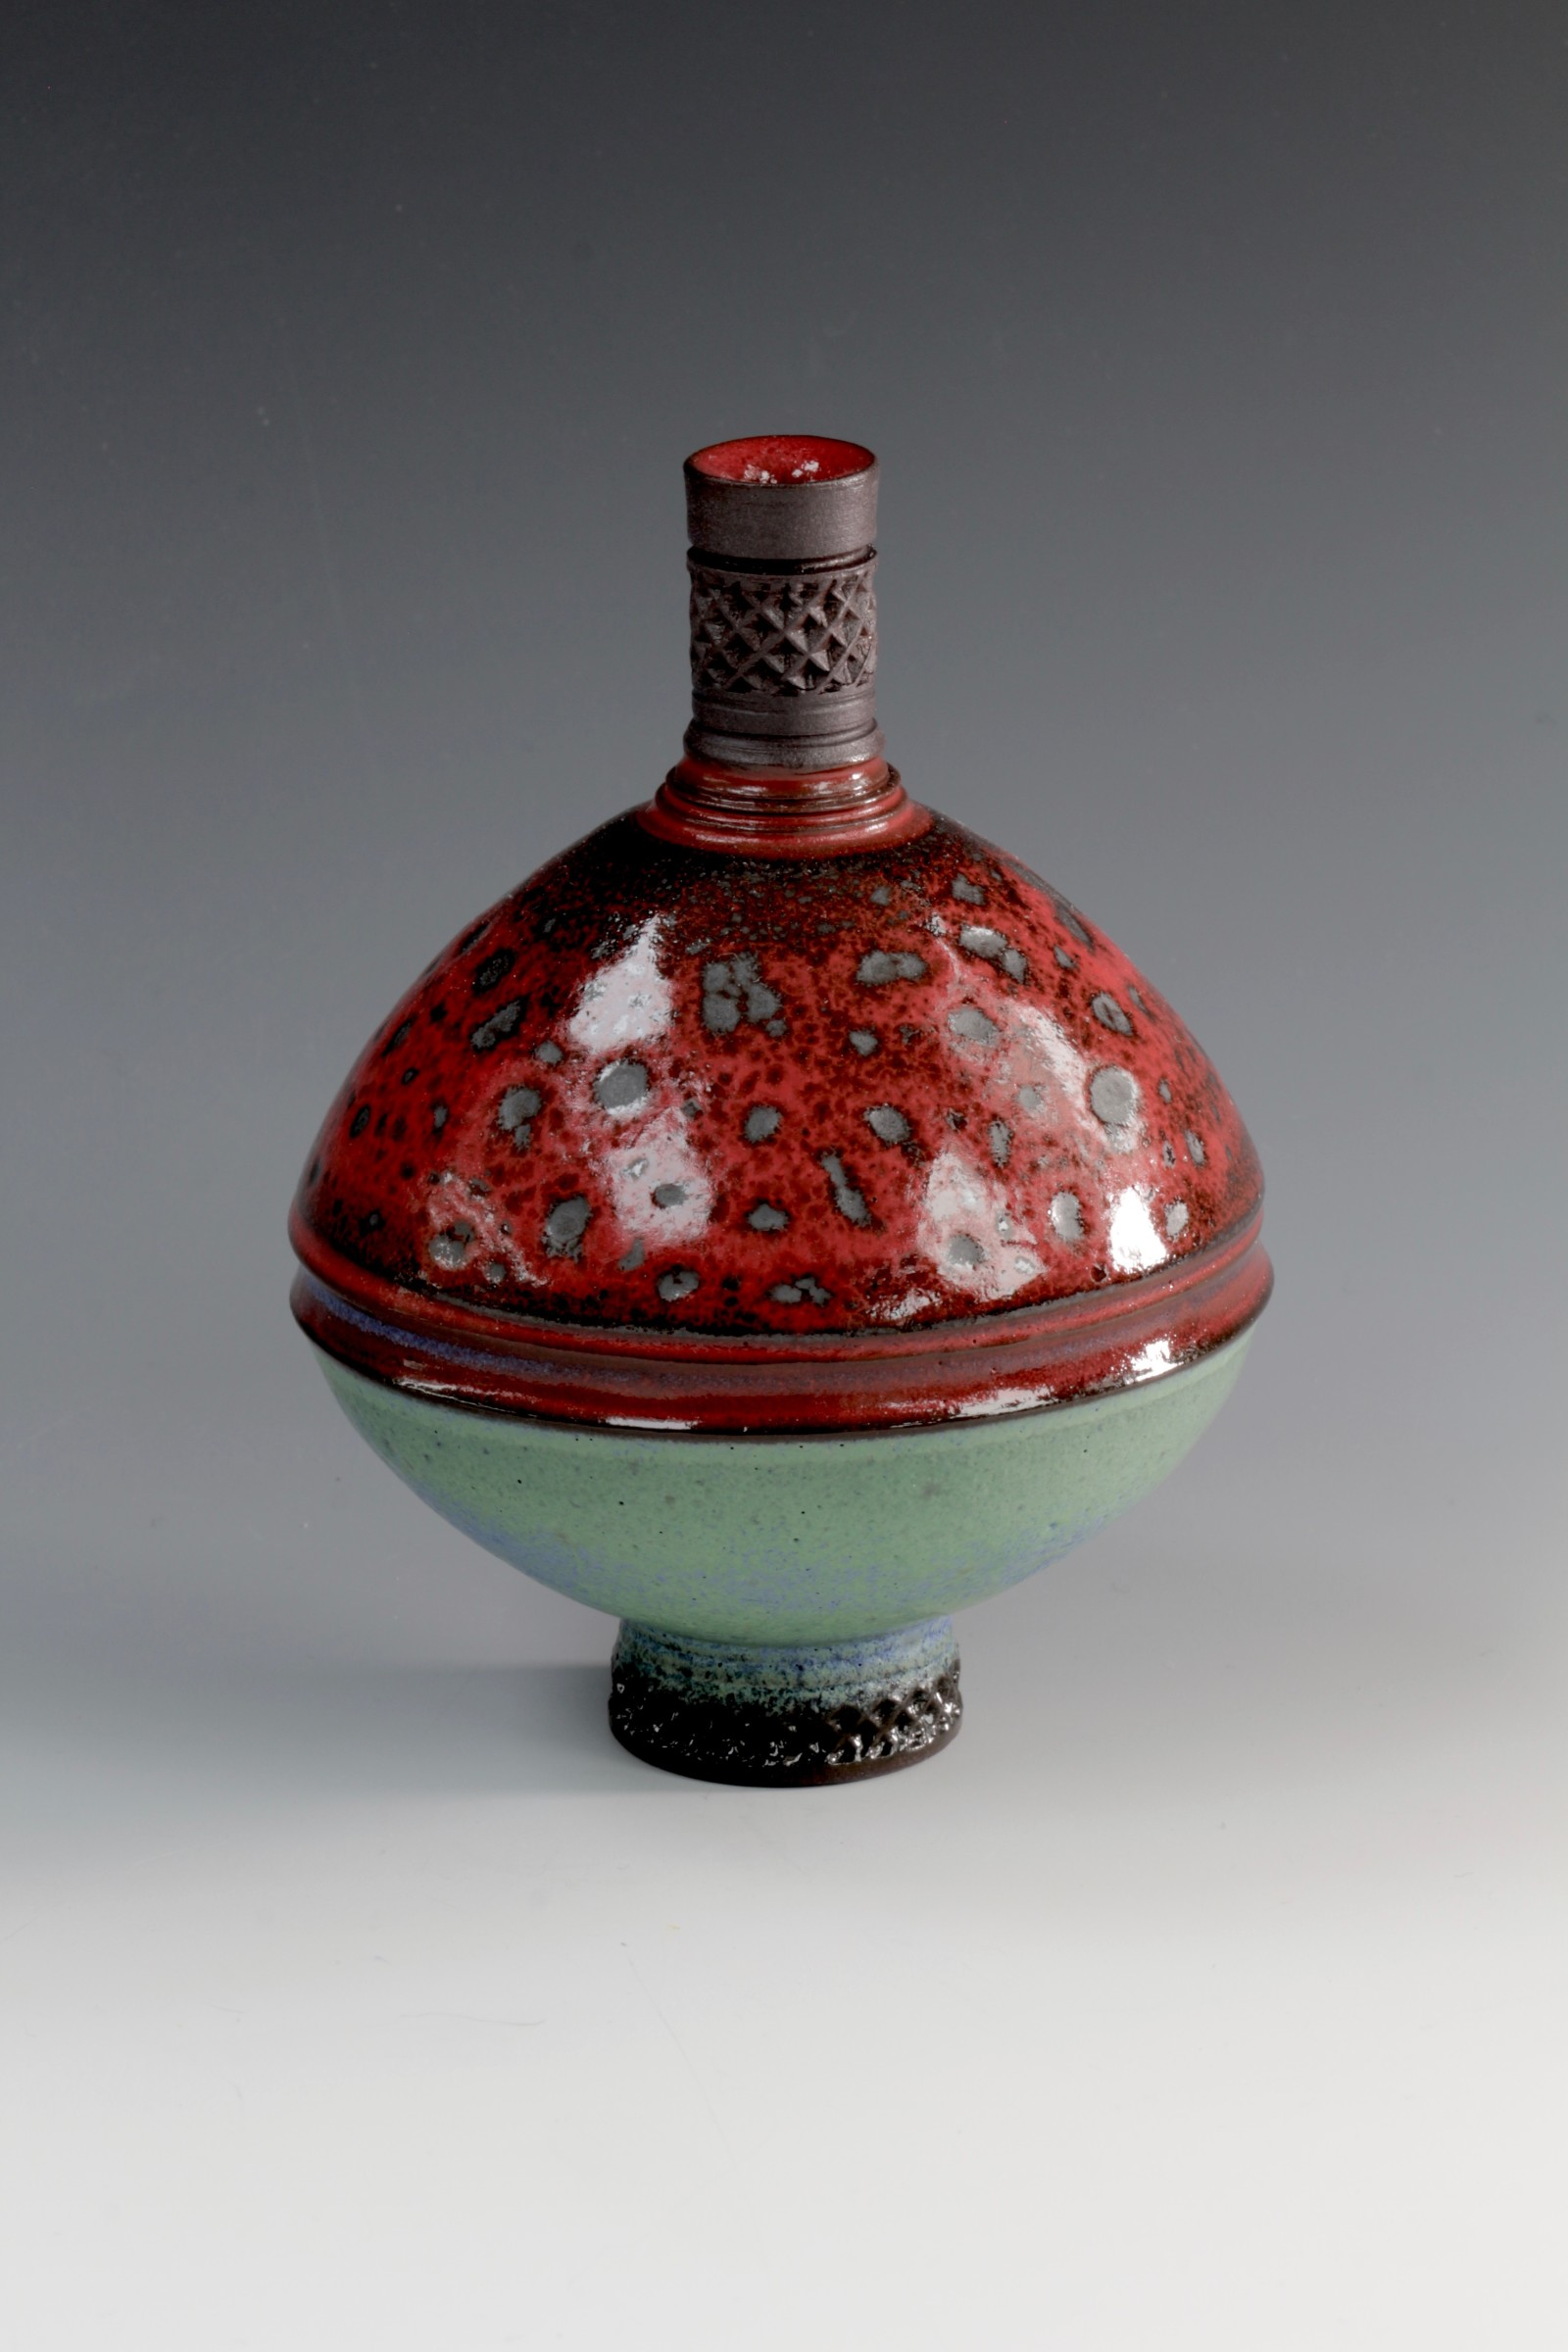 "<span class=""link fancybox-details-link""><a href=""/artists/61-geoffrey-swindell/works/6905-geoffrey-swindell-bud-vase-2020/"">View Detail Page</a></span><div class=""artist""><strong>Geoffrey Swindell</strong></div> b. 1945 <div class=""title""><em>Bud Vase</em>, 2020</div> <div class=""signed_and_dated"">impressed artist's seal to base</div> <div class=""medium"">porcelain</div><div class=""copyright_line"">Own Art: £ 17 x 10 Months, 0% APR</div>"